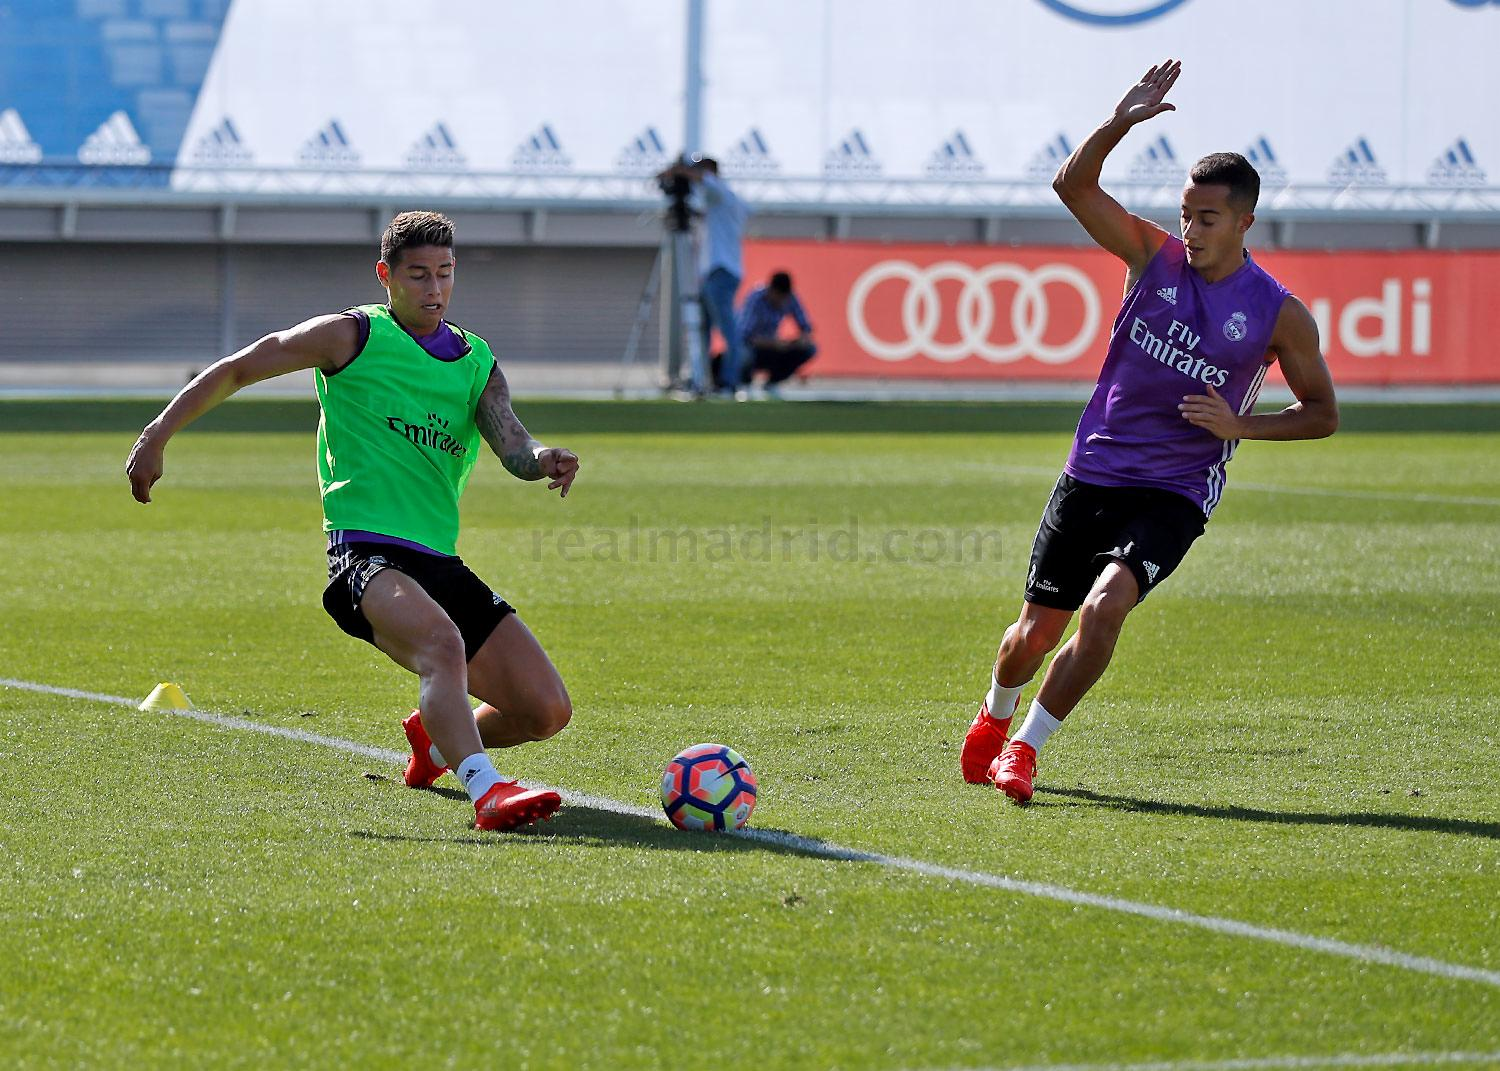 Real Madrid - Entrenamiento del Real Madrid - 11-08-2016